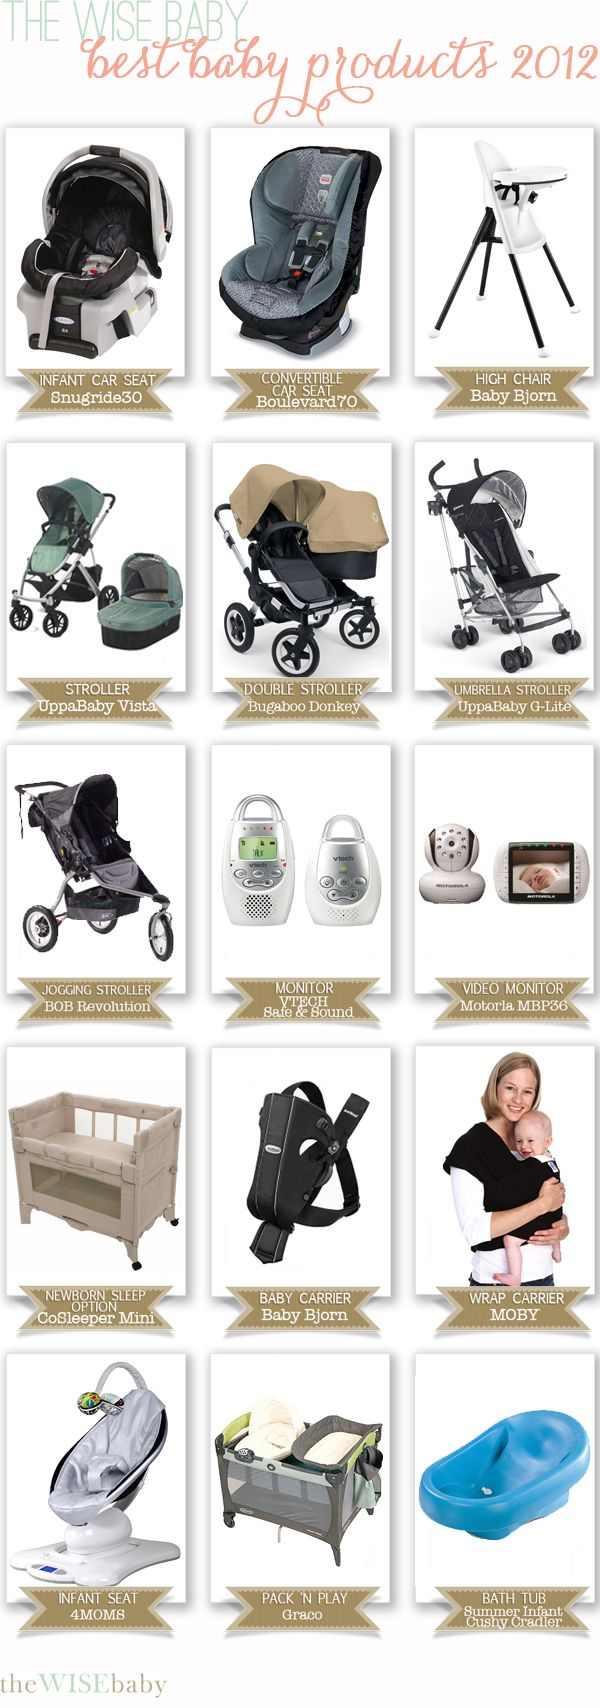 """For all my preggo ladies - """"best baby products 2012"""" Didn't use most these things for my oldest. Would get some products."""